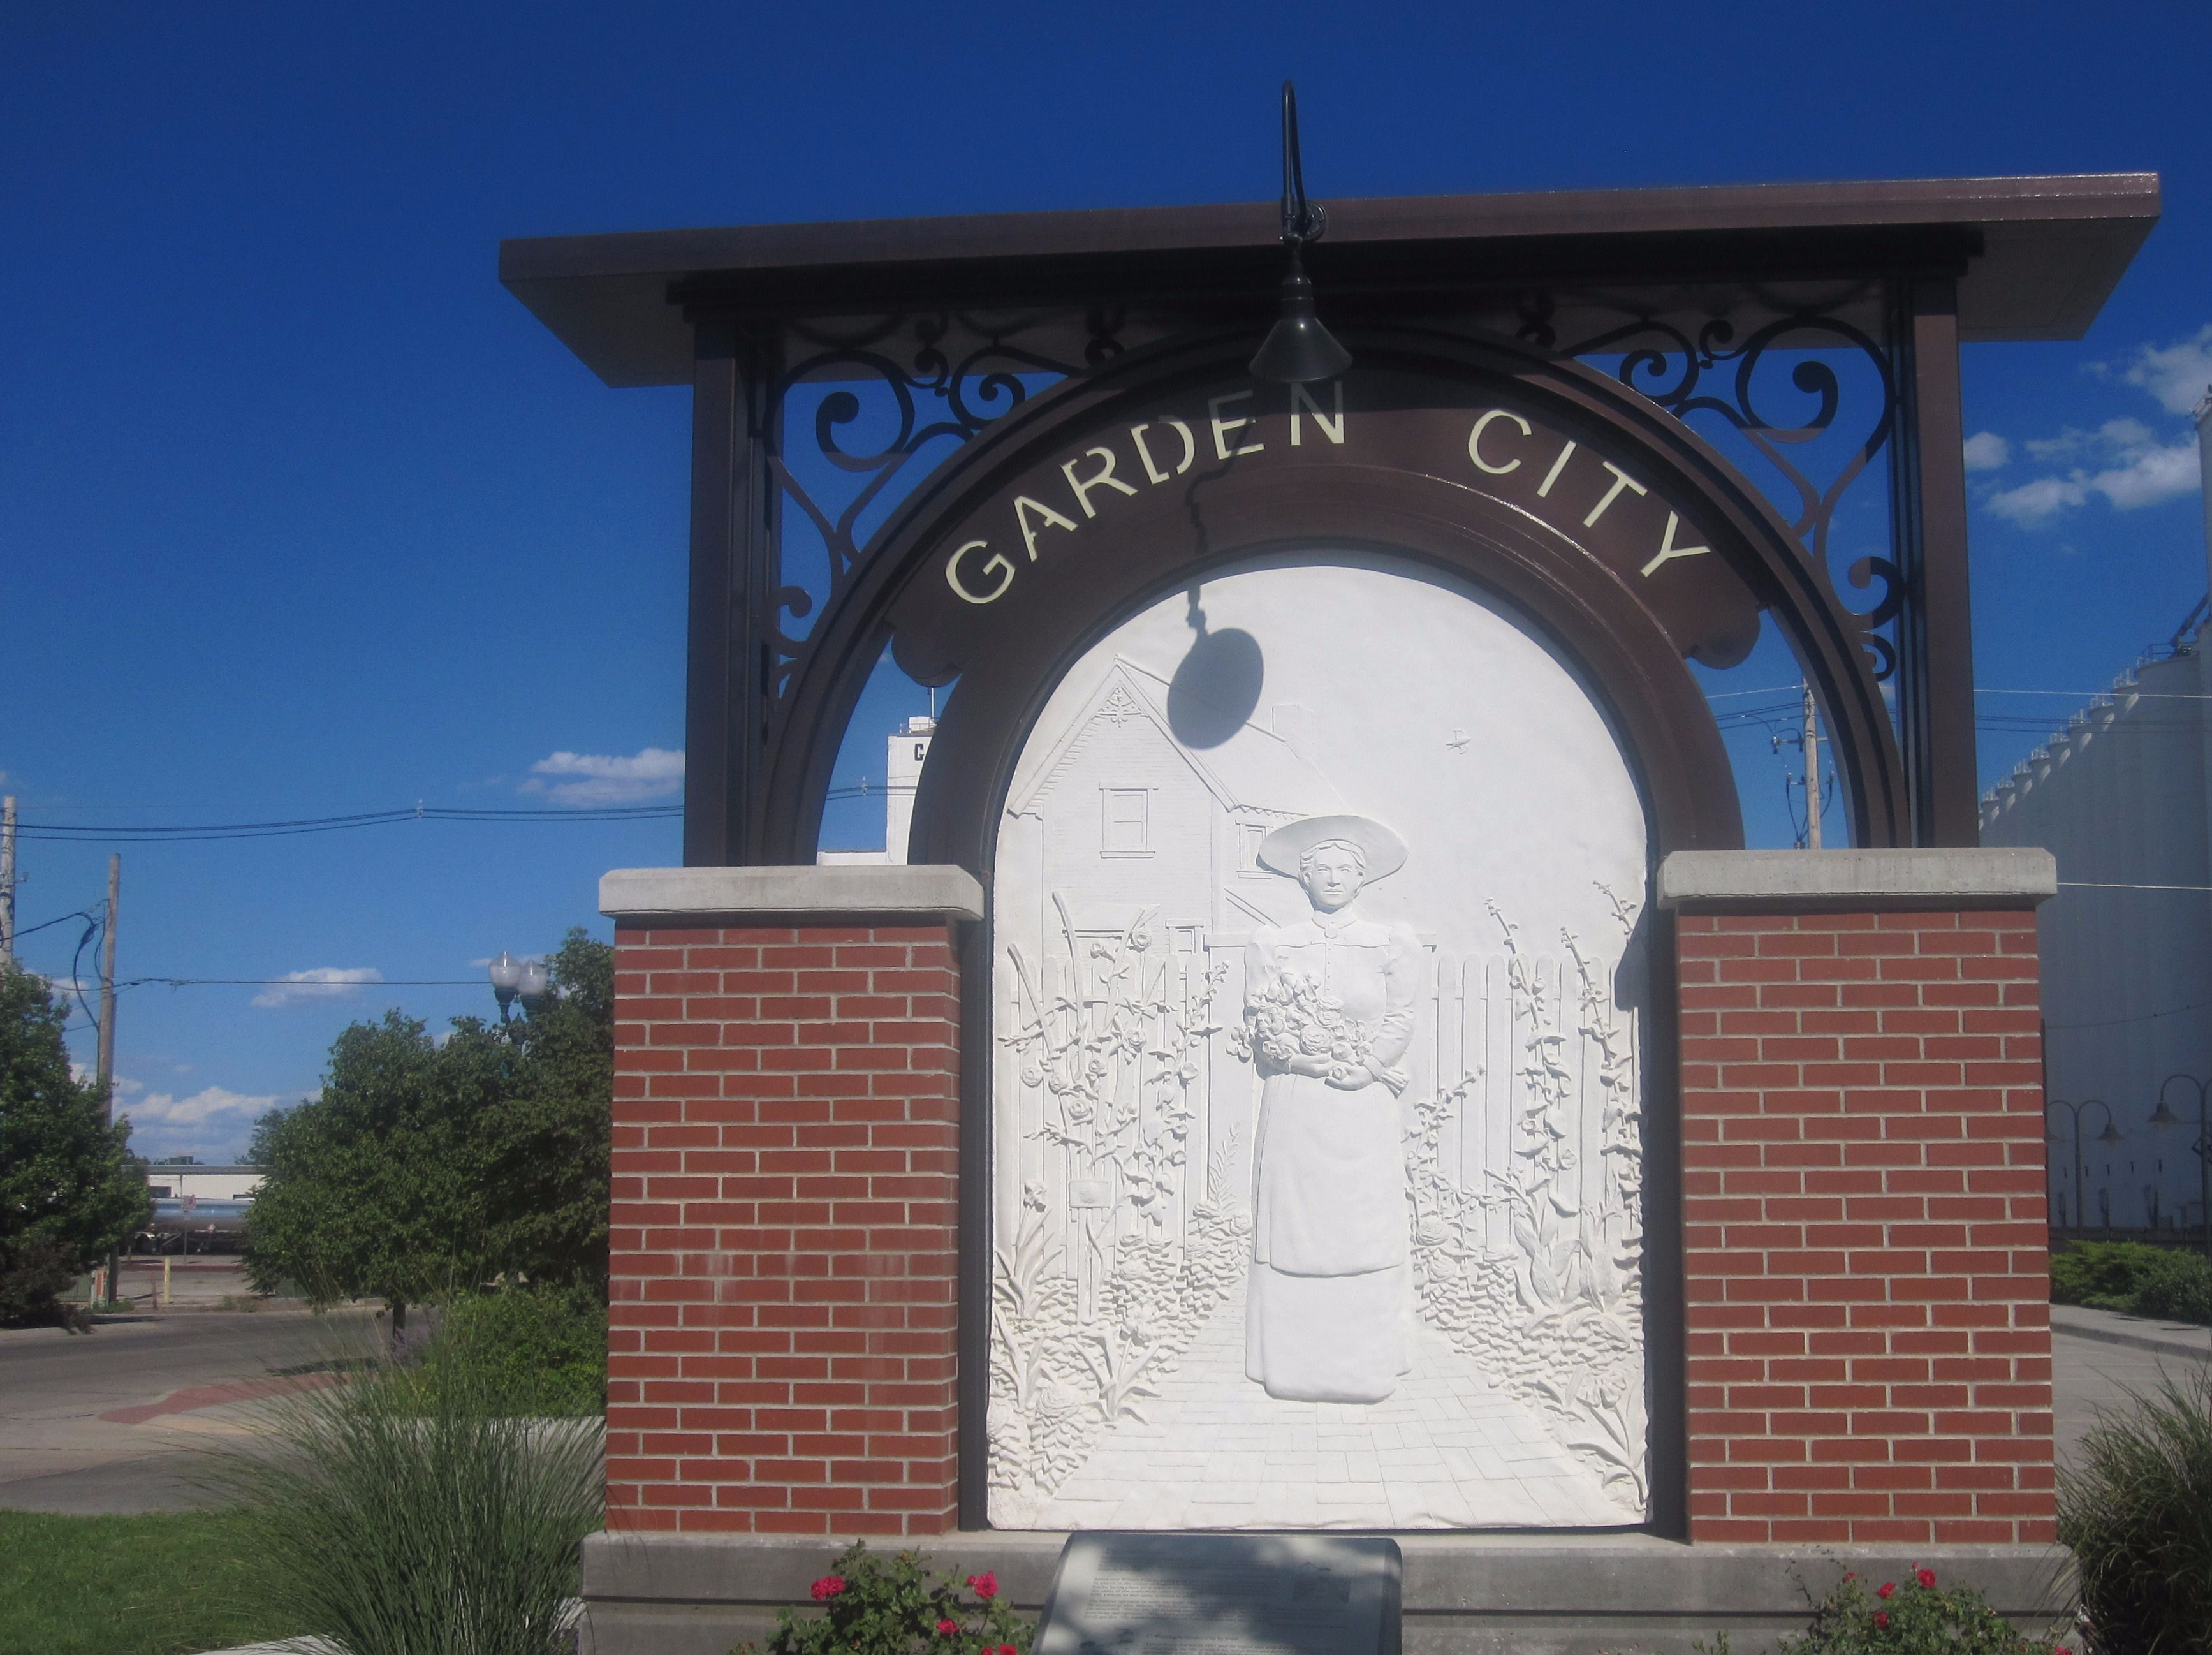 Kansas Hospitality: Garden City, Kansas, usually offers a more fulsome greeting to those who arrive there.